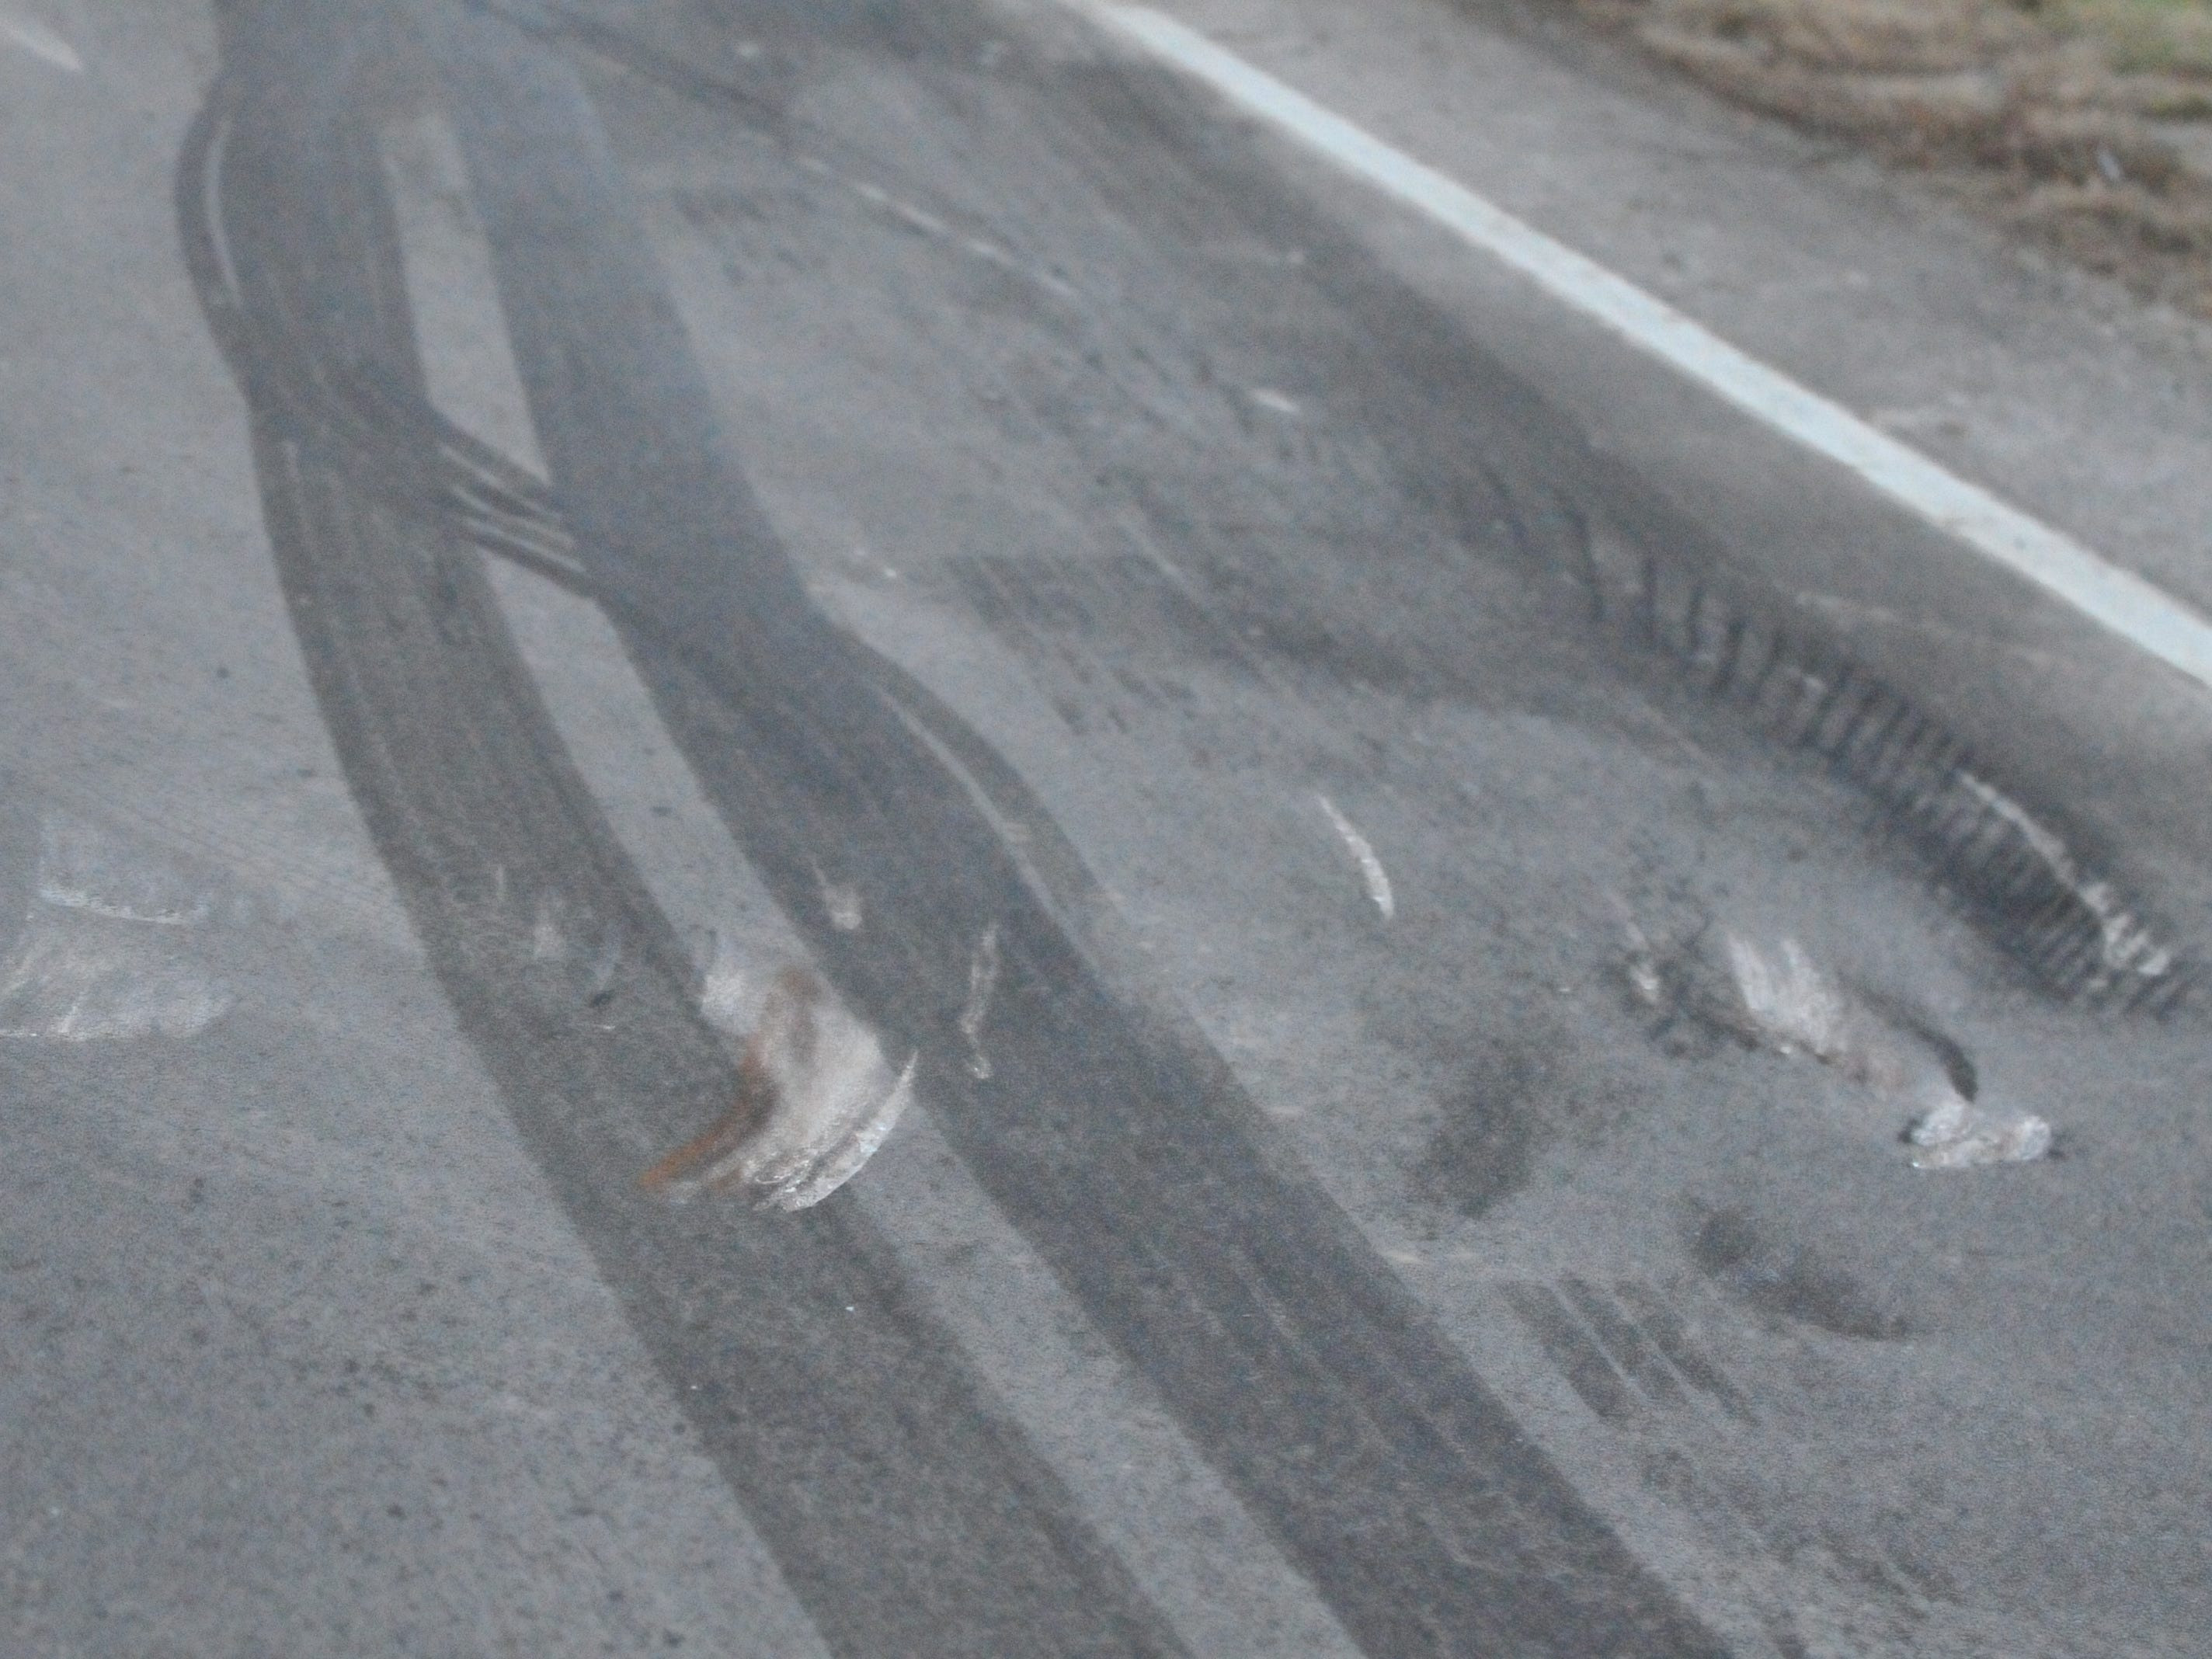 Gouges in the pavement indicate the point where a semi tractor-trailer struck a PT Cruiser on U.S. 35.